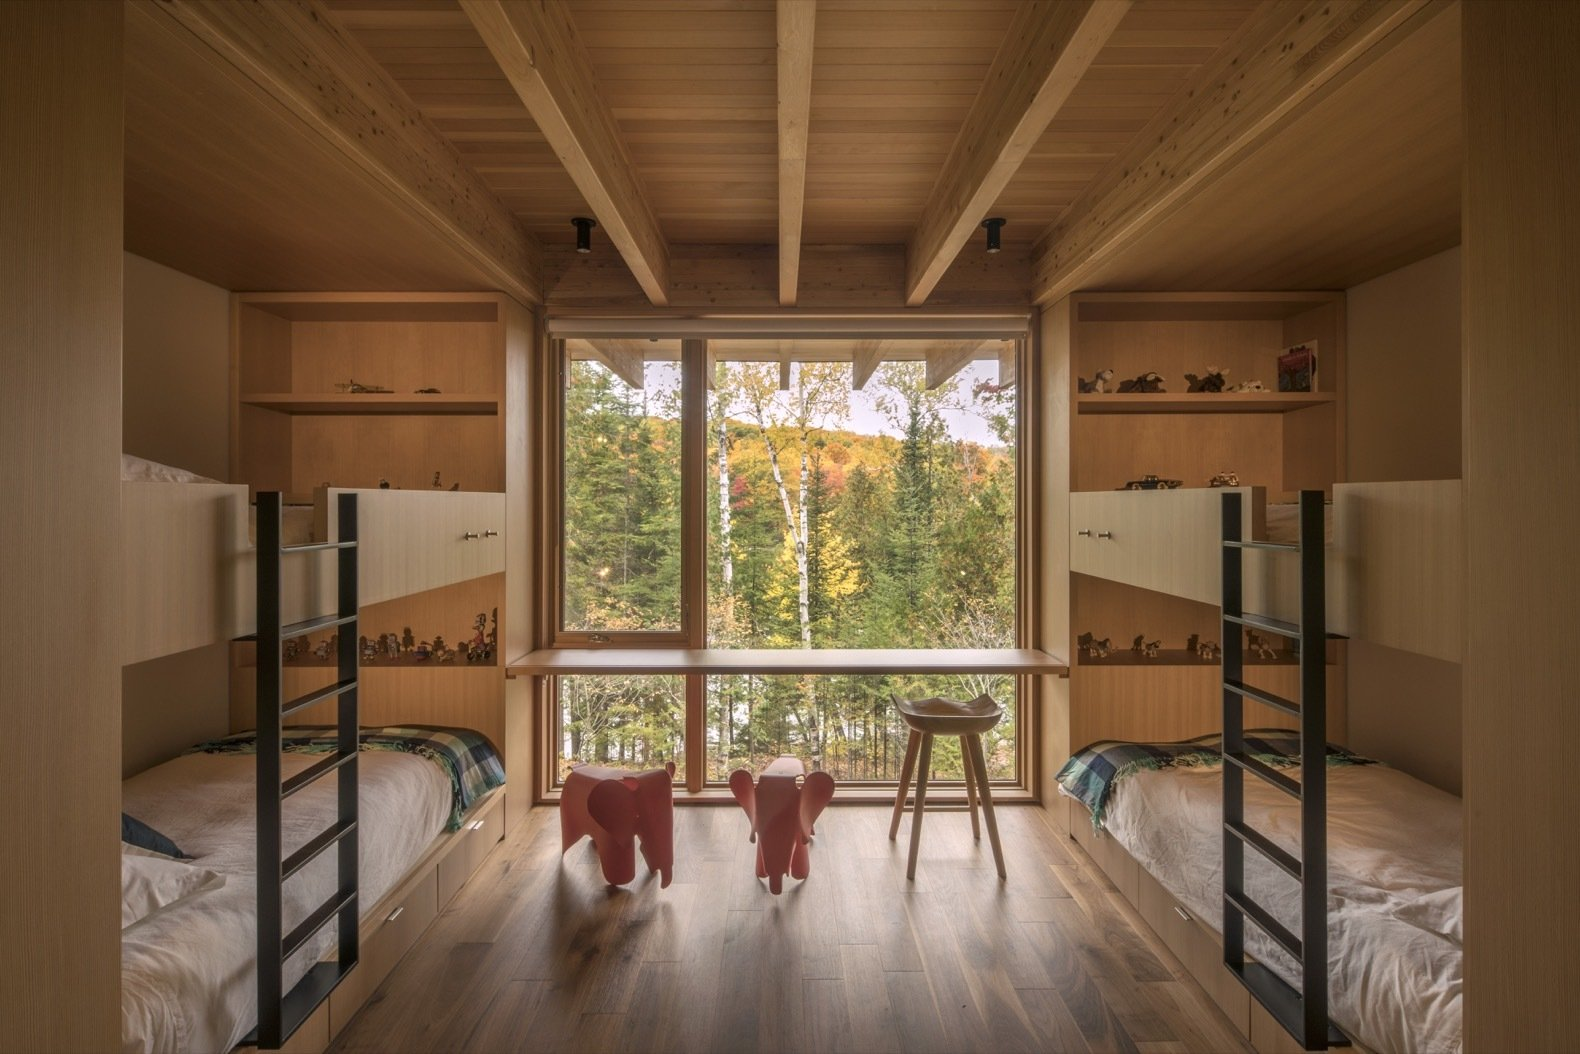 Kids, Chair, Bunks, Shelves, Bedroom, Desk, Neutral, and Medium Hardwood Oversized sliding doors open to the bunk room with floor-to-ceiling windows overlooking the serene lake.    Best Kids Bunks Neutral Photos from This Award-Winning Cabin Is a Relaxing Antidote to City Living